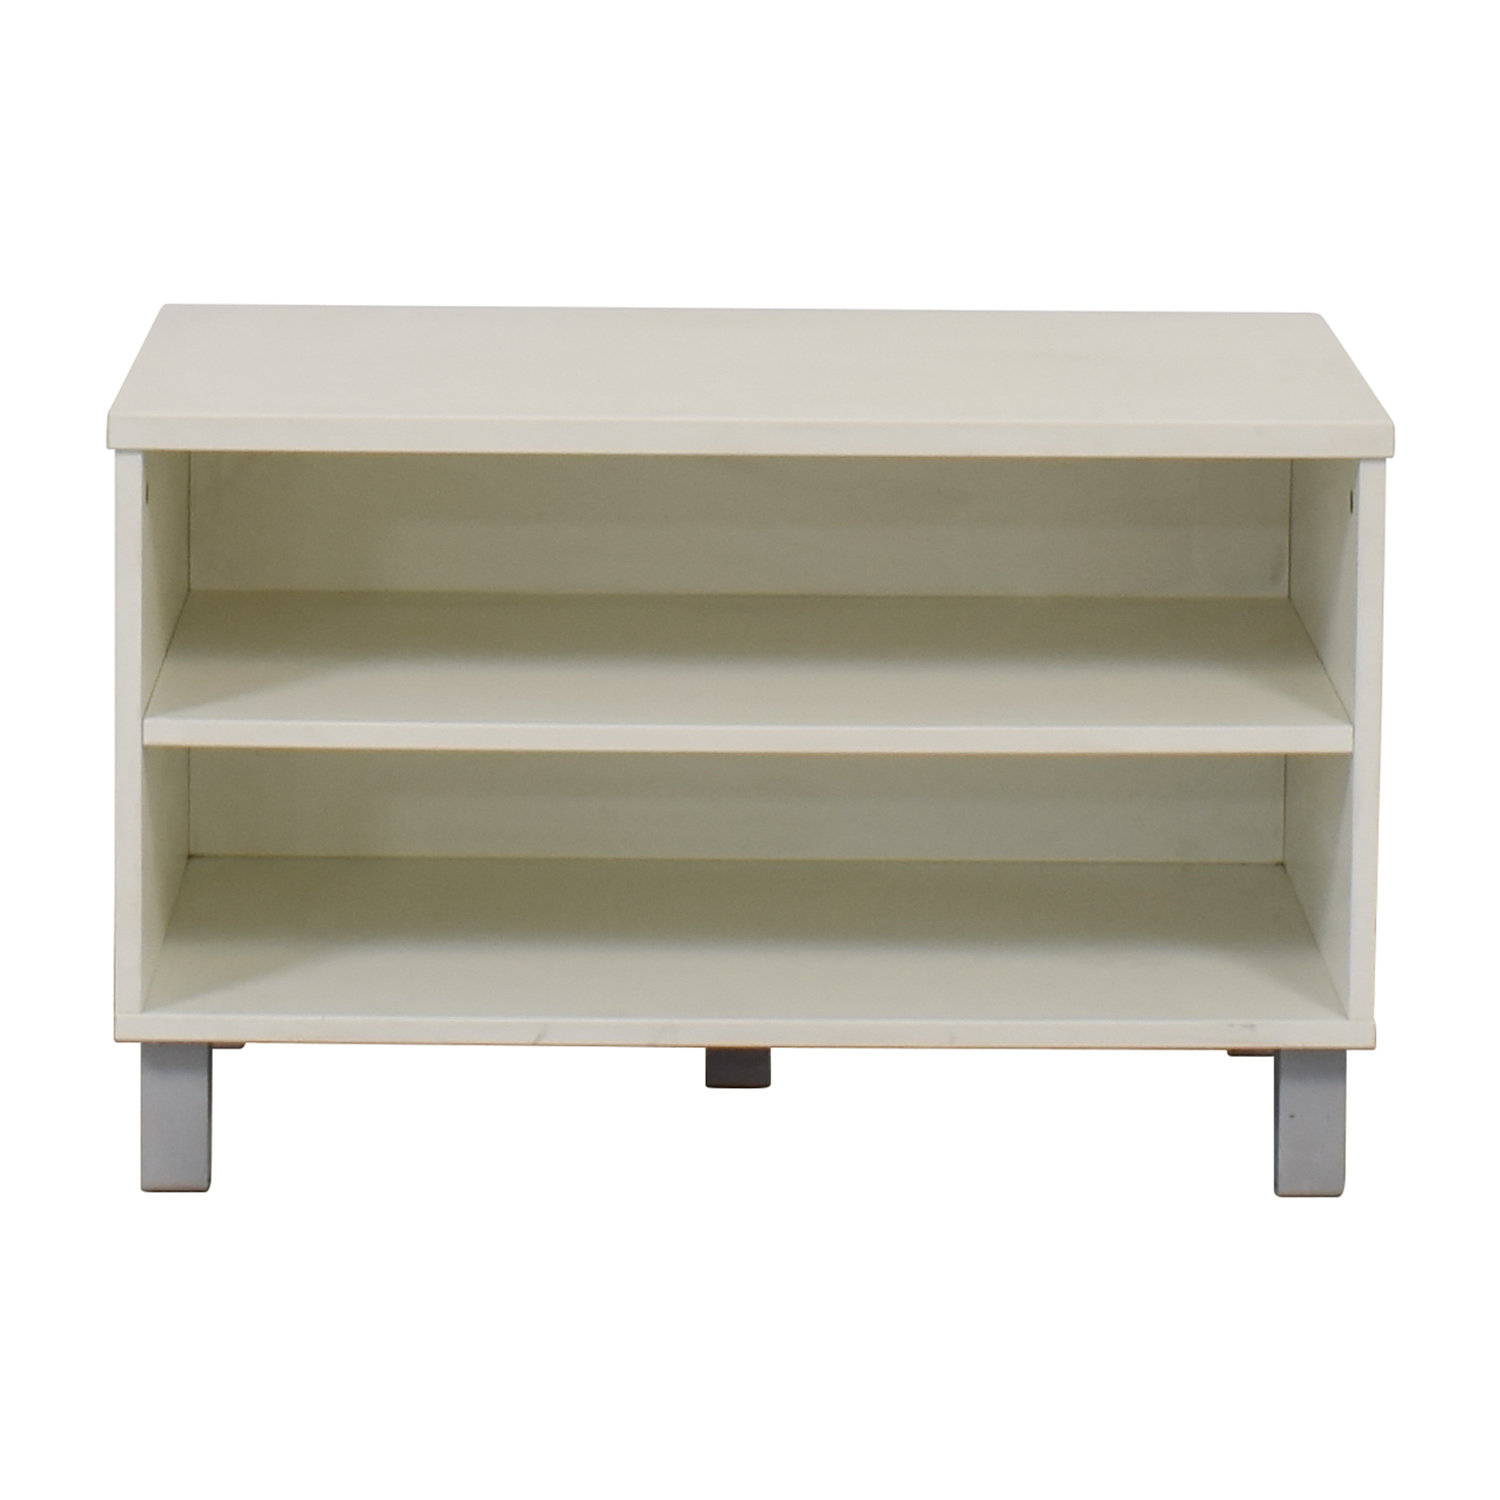 IKEA White Shelving Unit / Storage